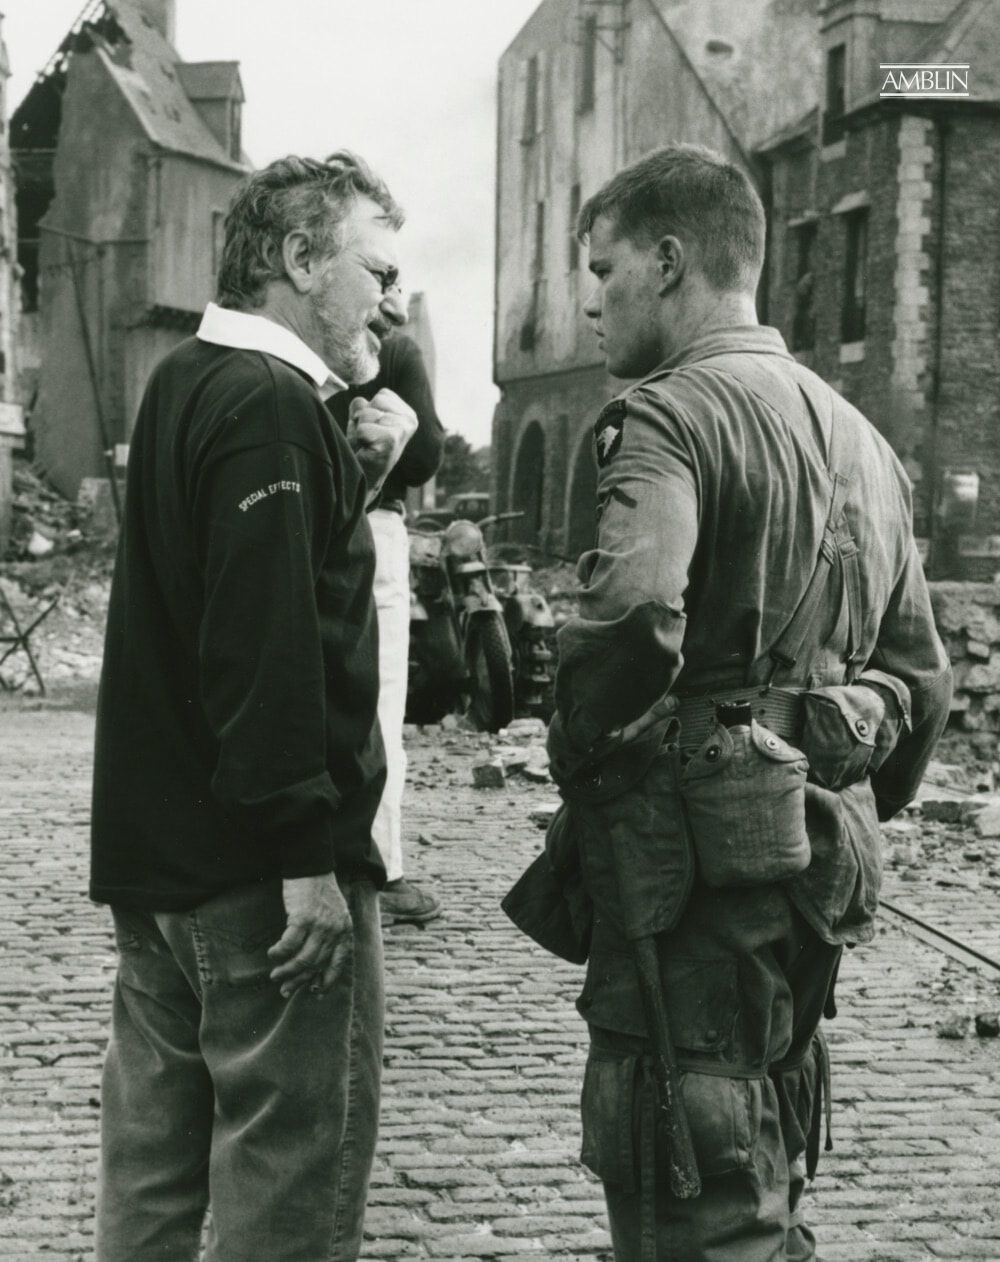 Directing Private Ryan (Matt Damon) on the fully constructed city of Ramelle (a fictitious location), the site of the final battle in the film.